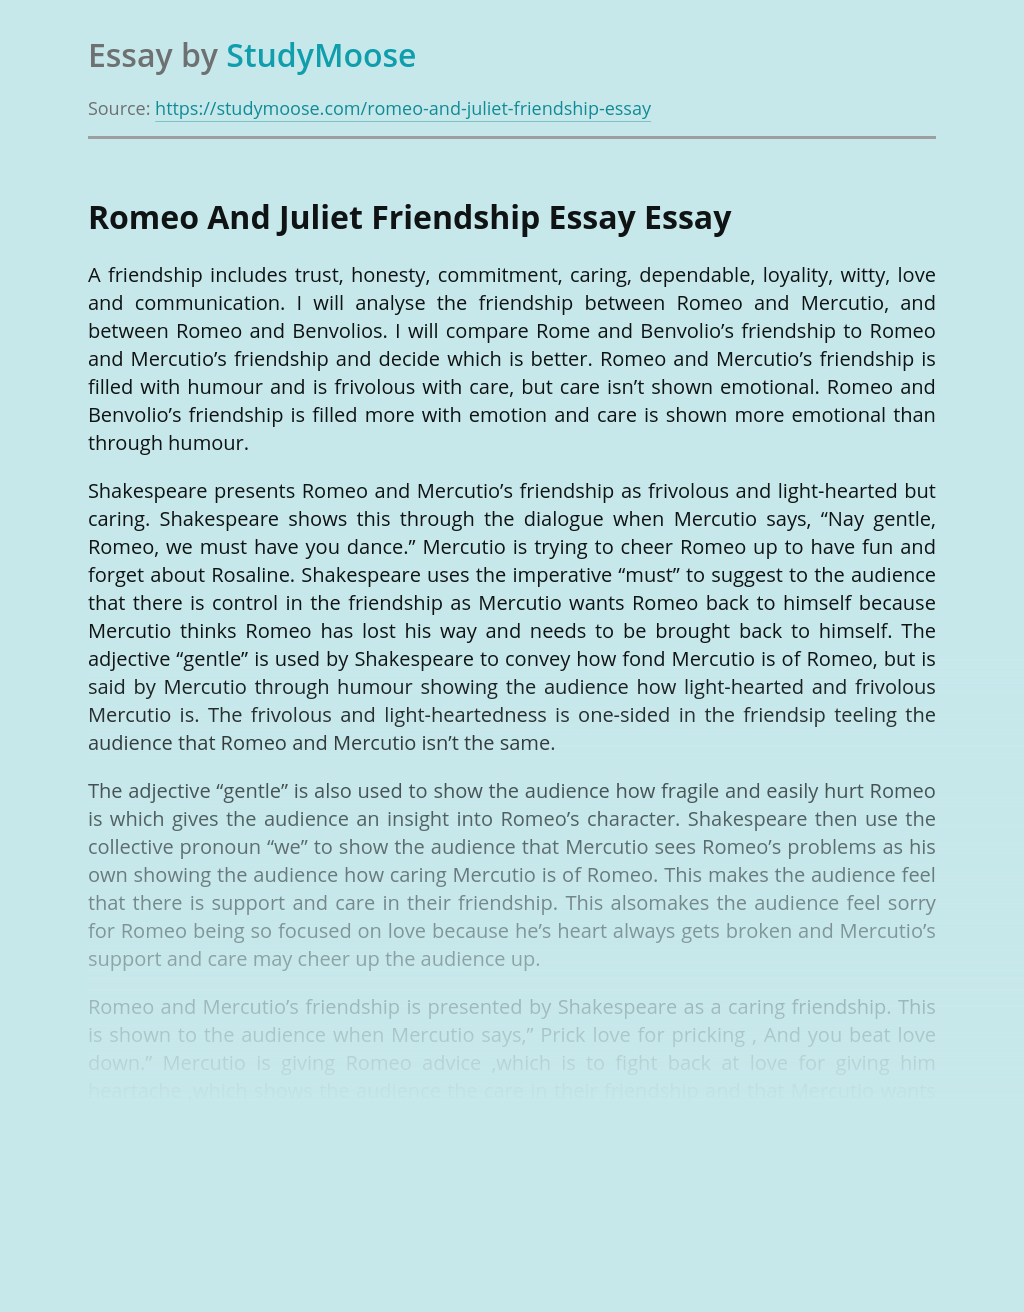 Romeo And Juliet Friendship Essay